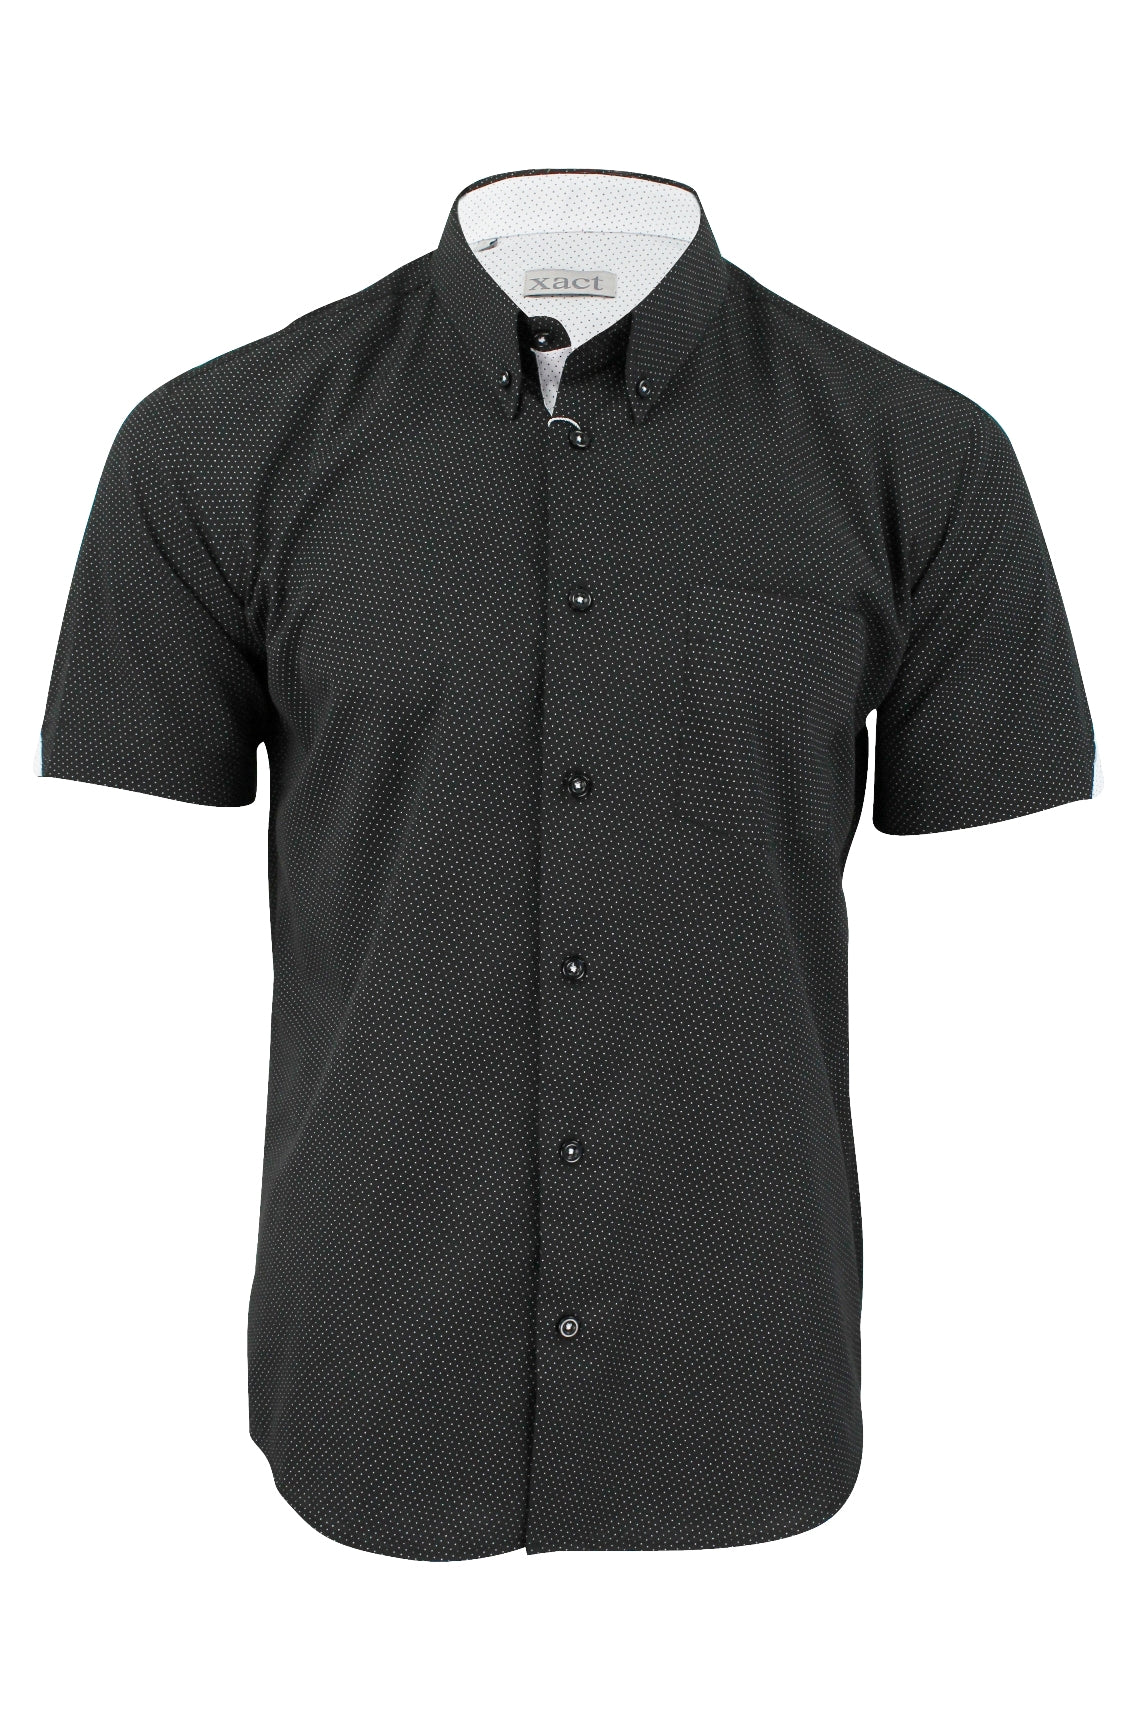 Mens Short Sleeved Shirt by Xact Clothing Mini Polka Dot-2